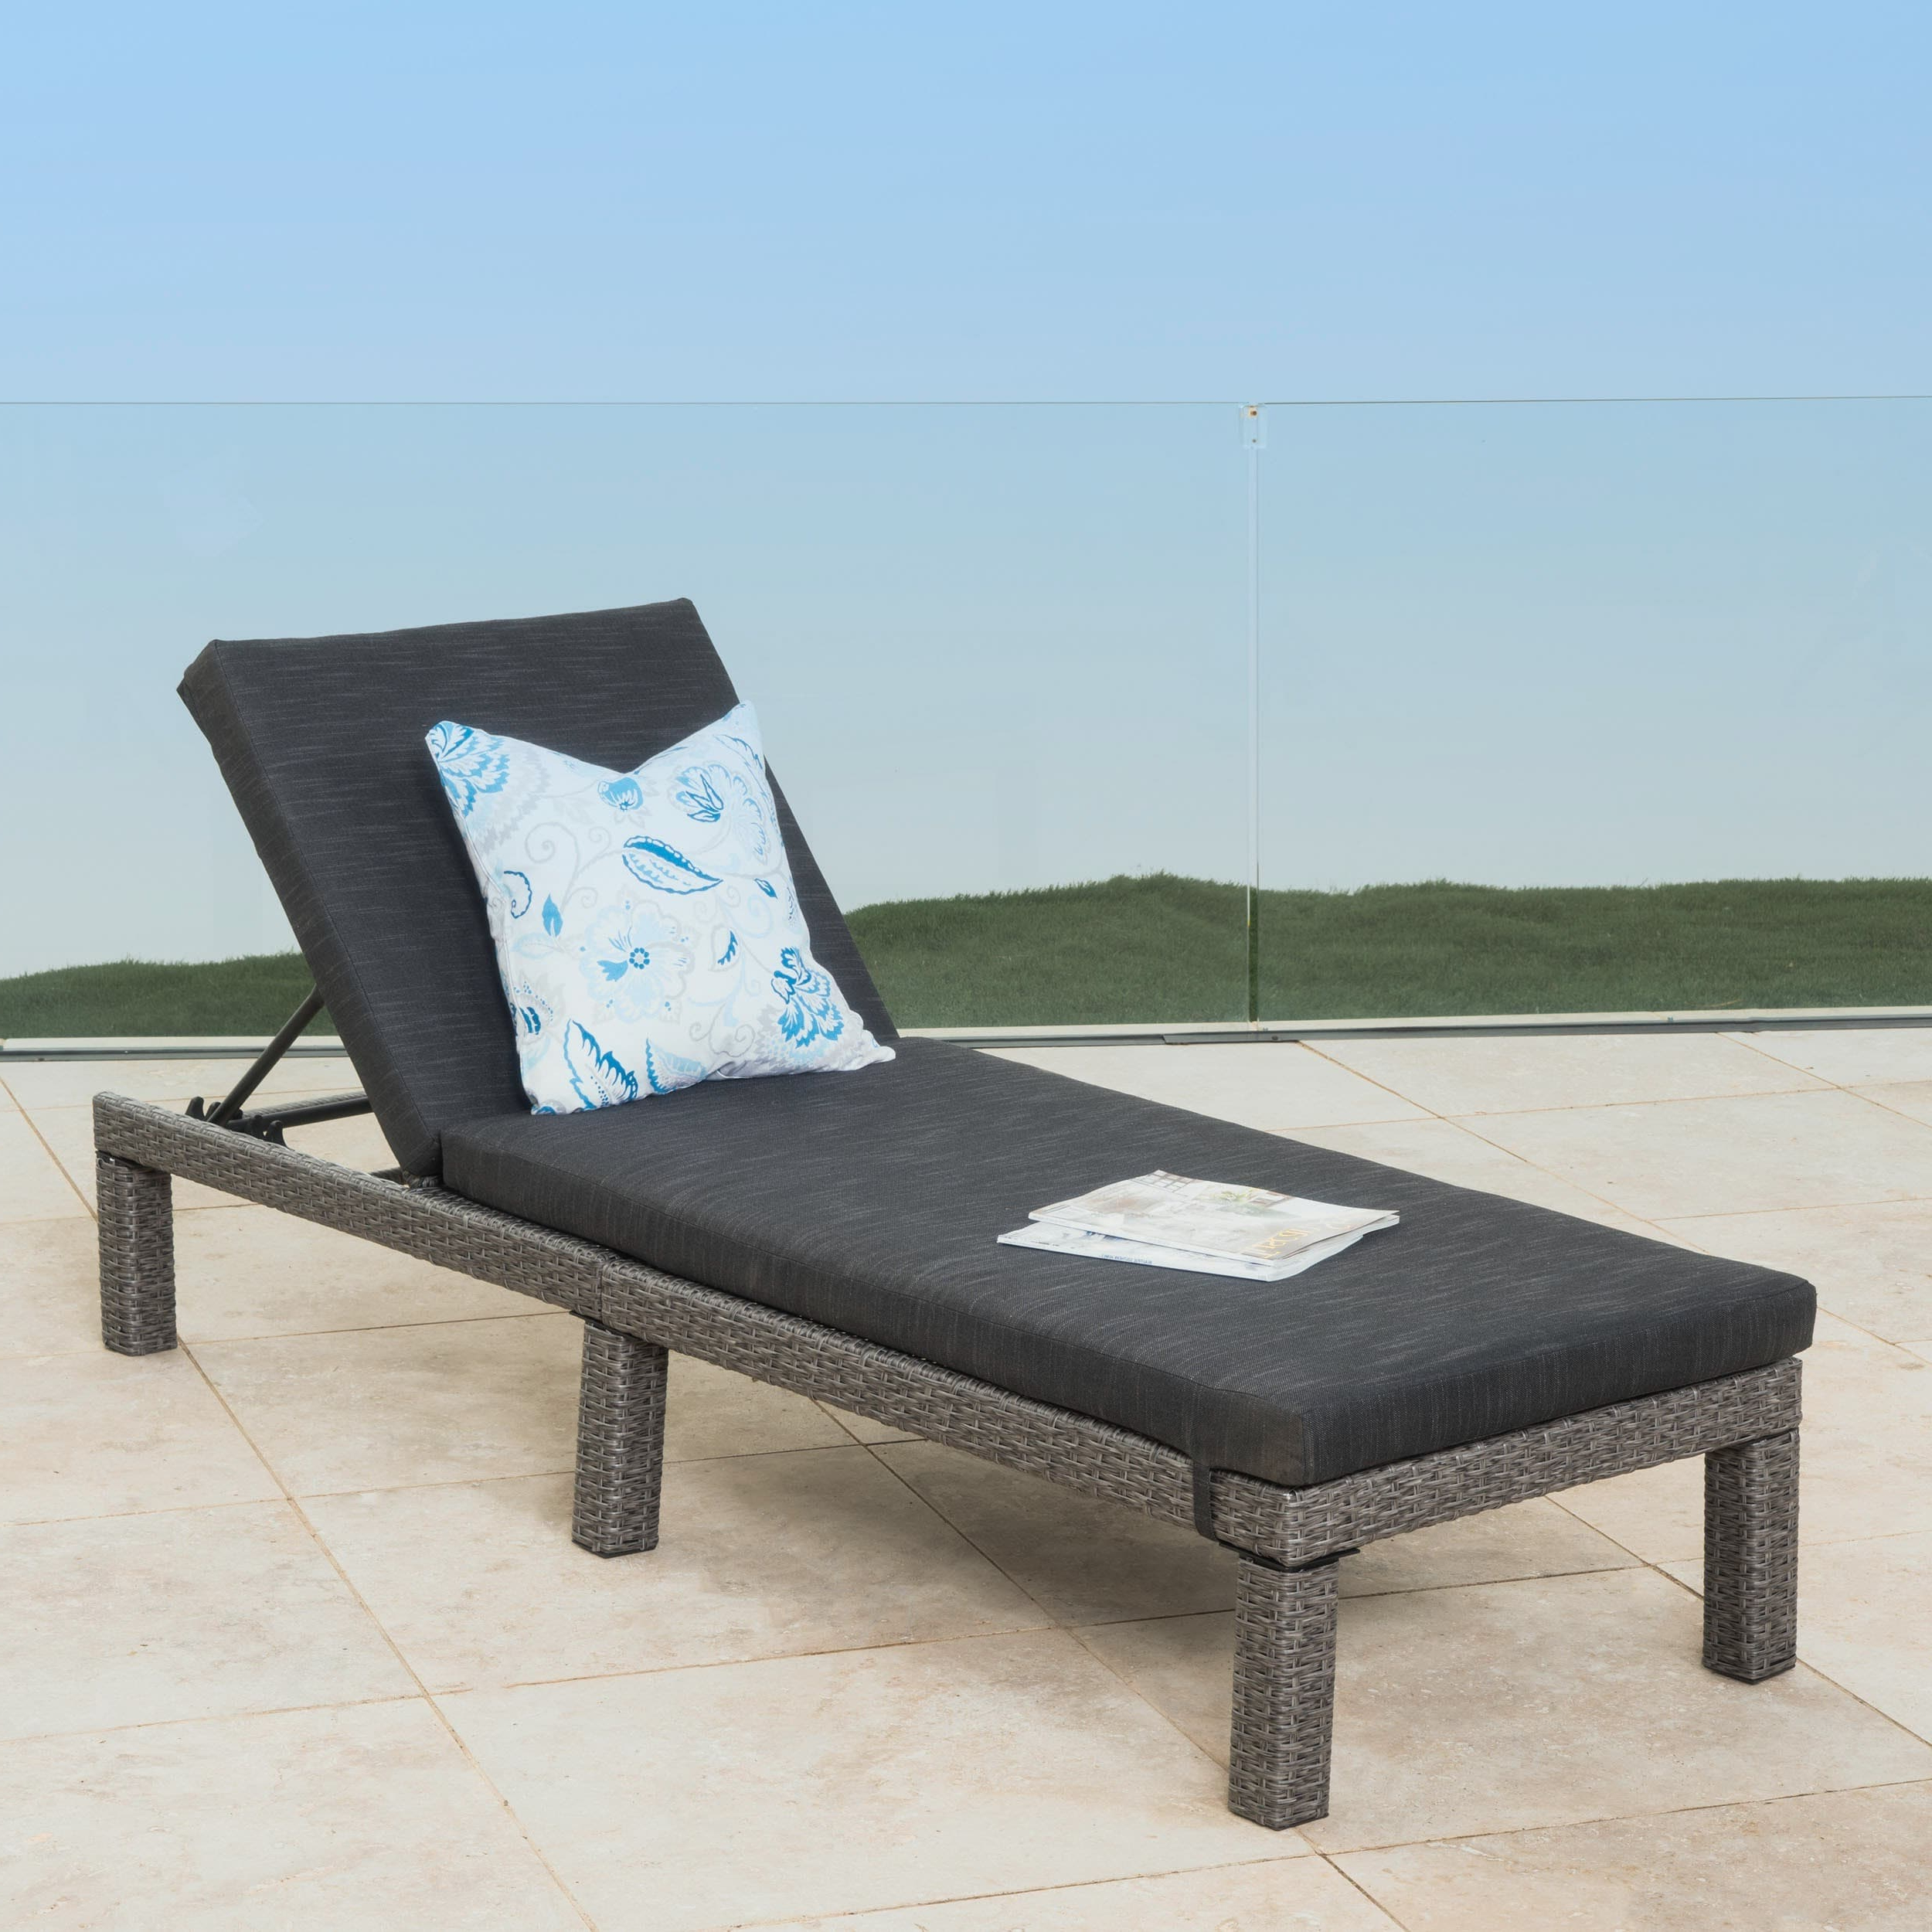 Favorite White Wicker Adjustable Chaise Loungers With Cushions Pertaining To Christopher Knight Home Puerta Outdoor Adjustable Wicker Chaise Lounge With Cushion By (View 11 of 25)